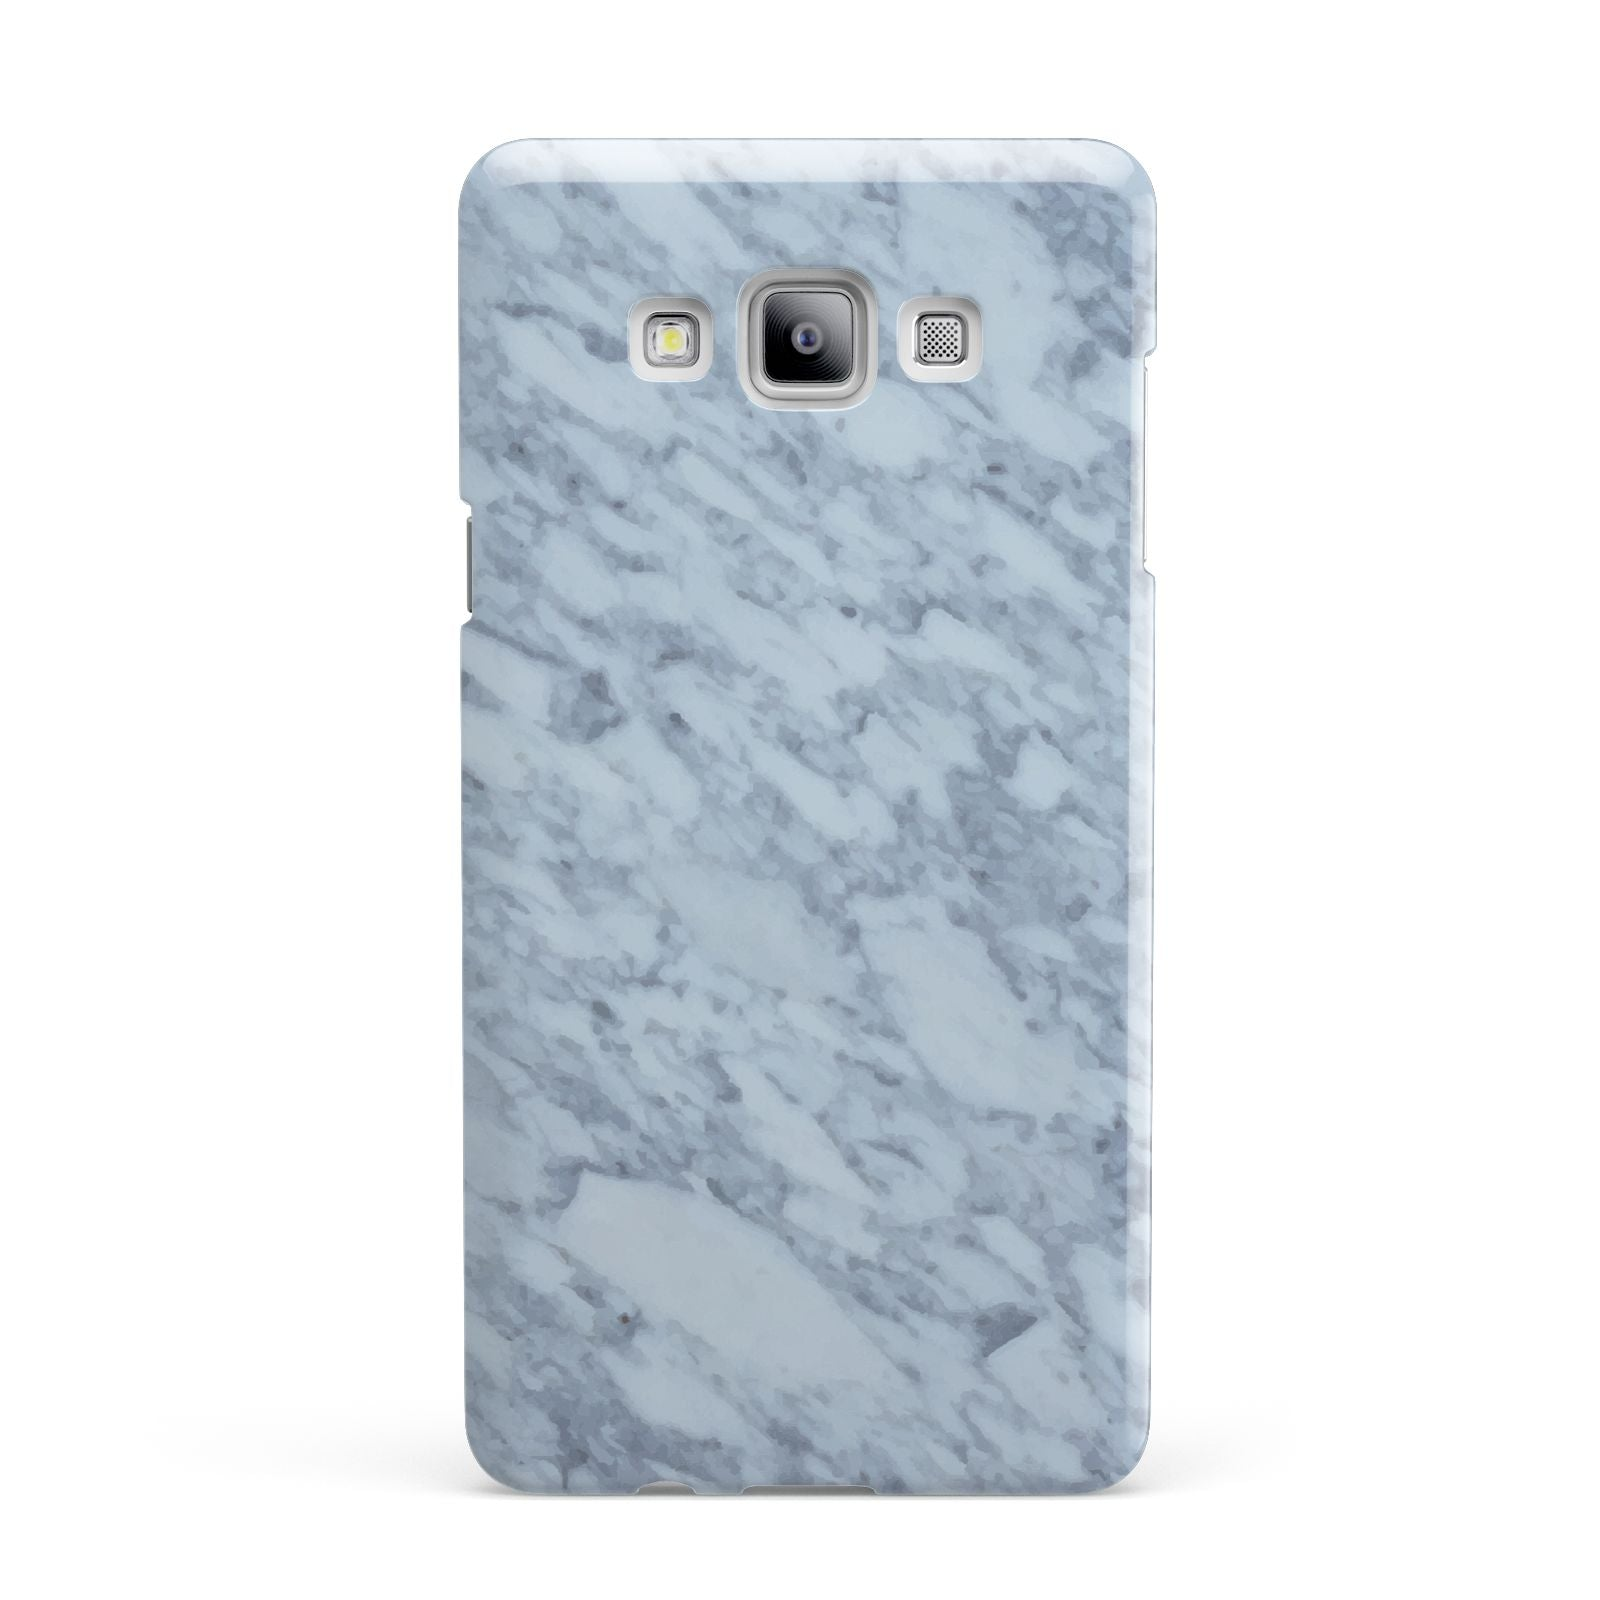 Faux Marble Grey 2 Samsung Galaxy A7 2015 Case